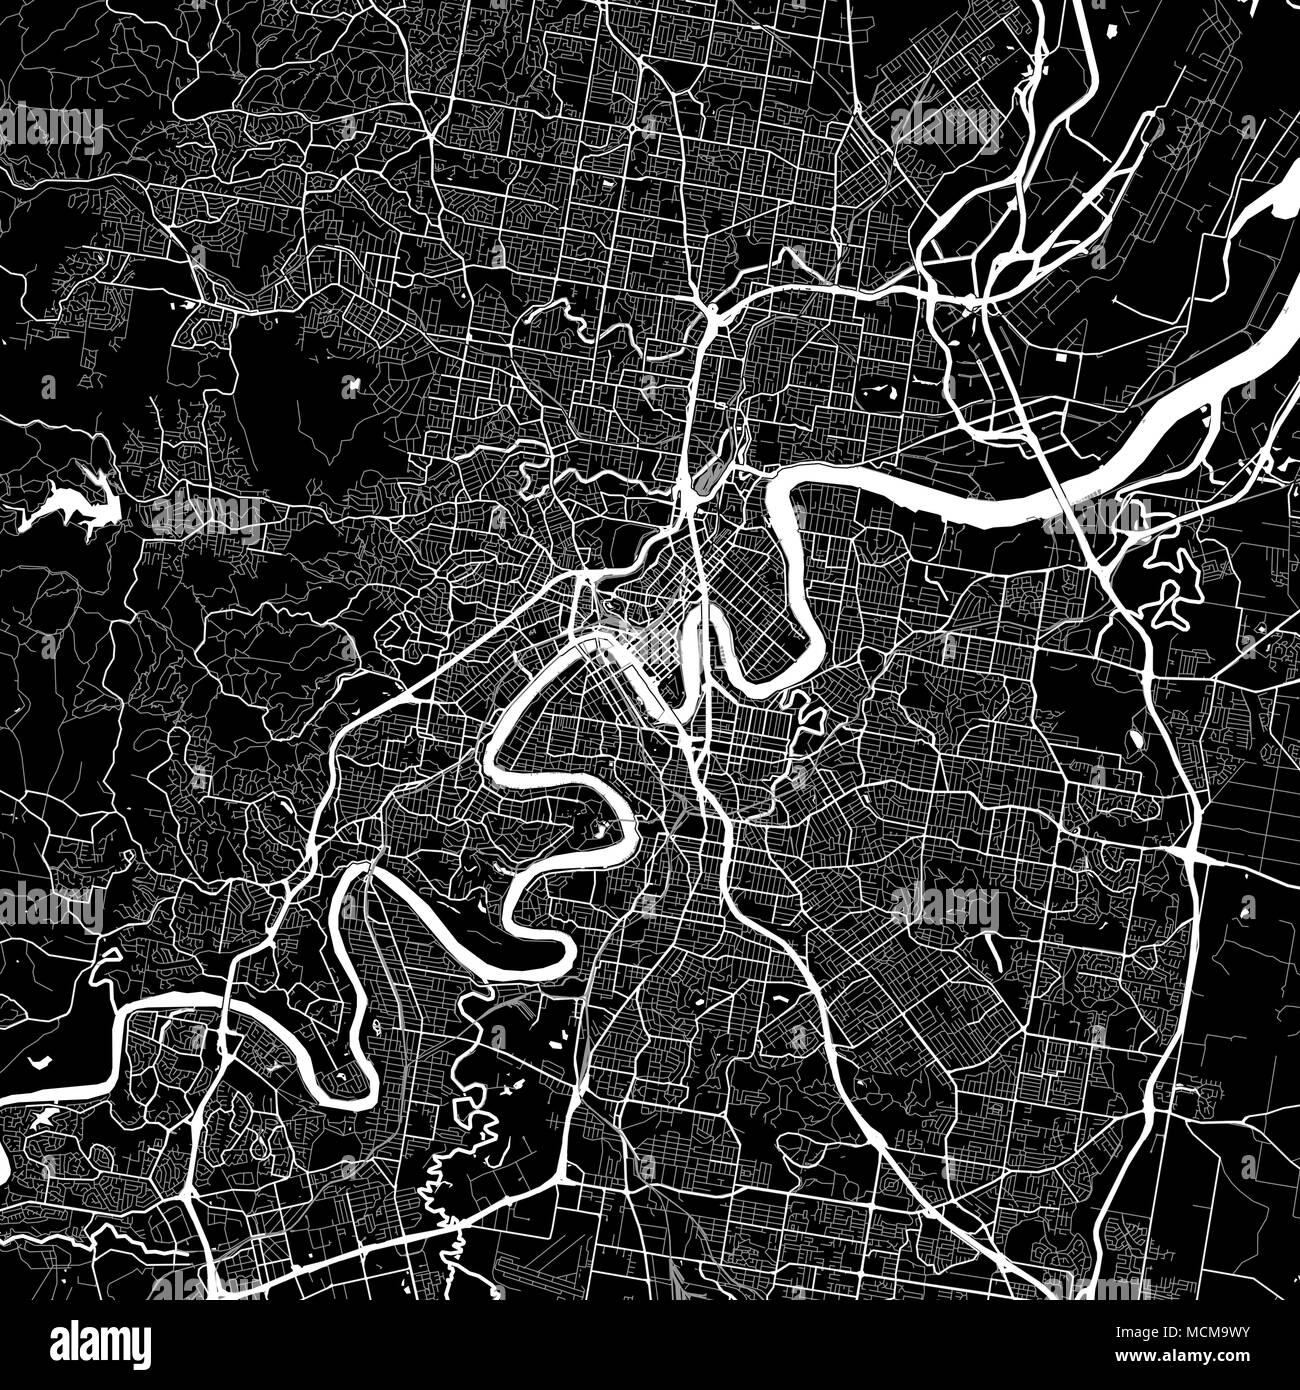 Area map of Brisbane, Australia. Dark background version for infographic and marketing projects. This map of Brisbane, Queensland, contains typical la - Stock Image